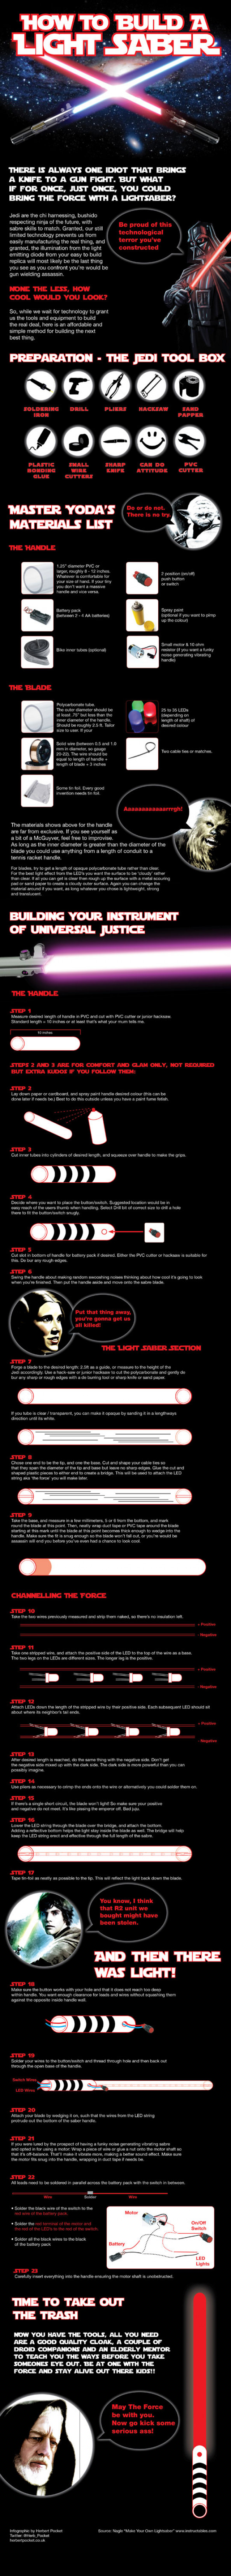 How To Build A Lightsaber Infographic